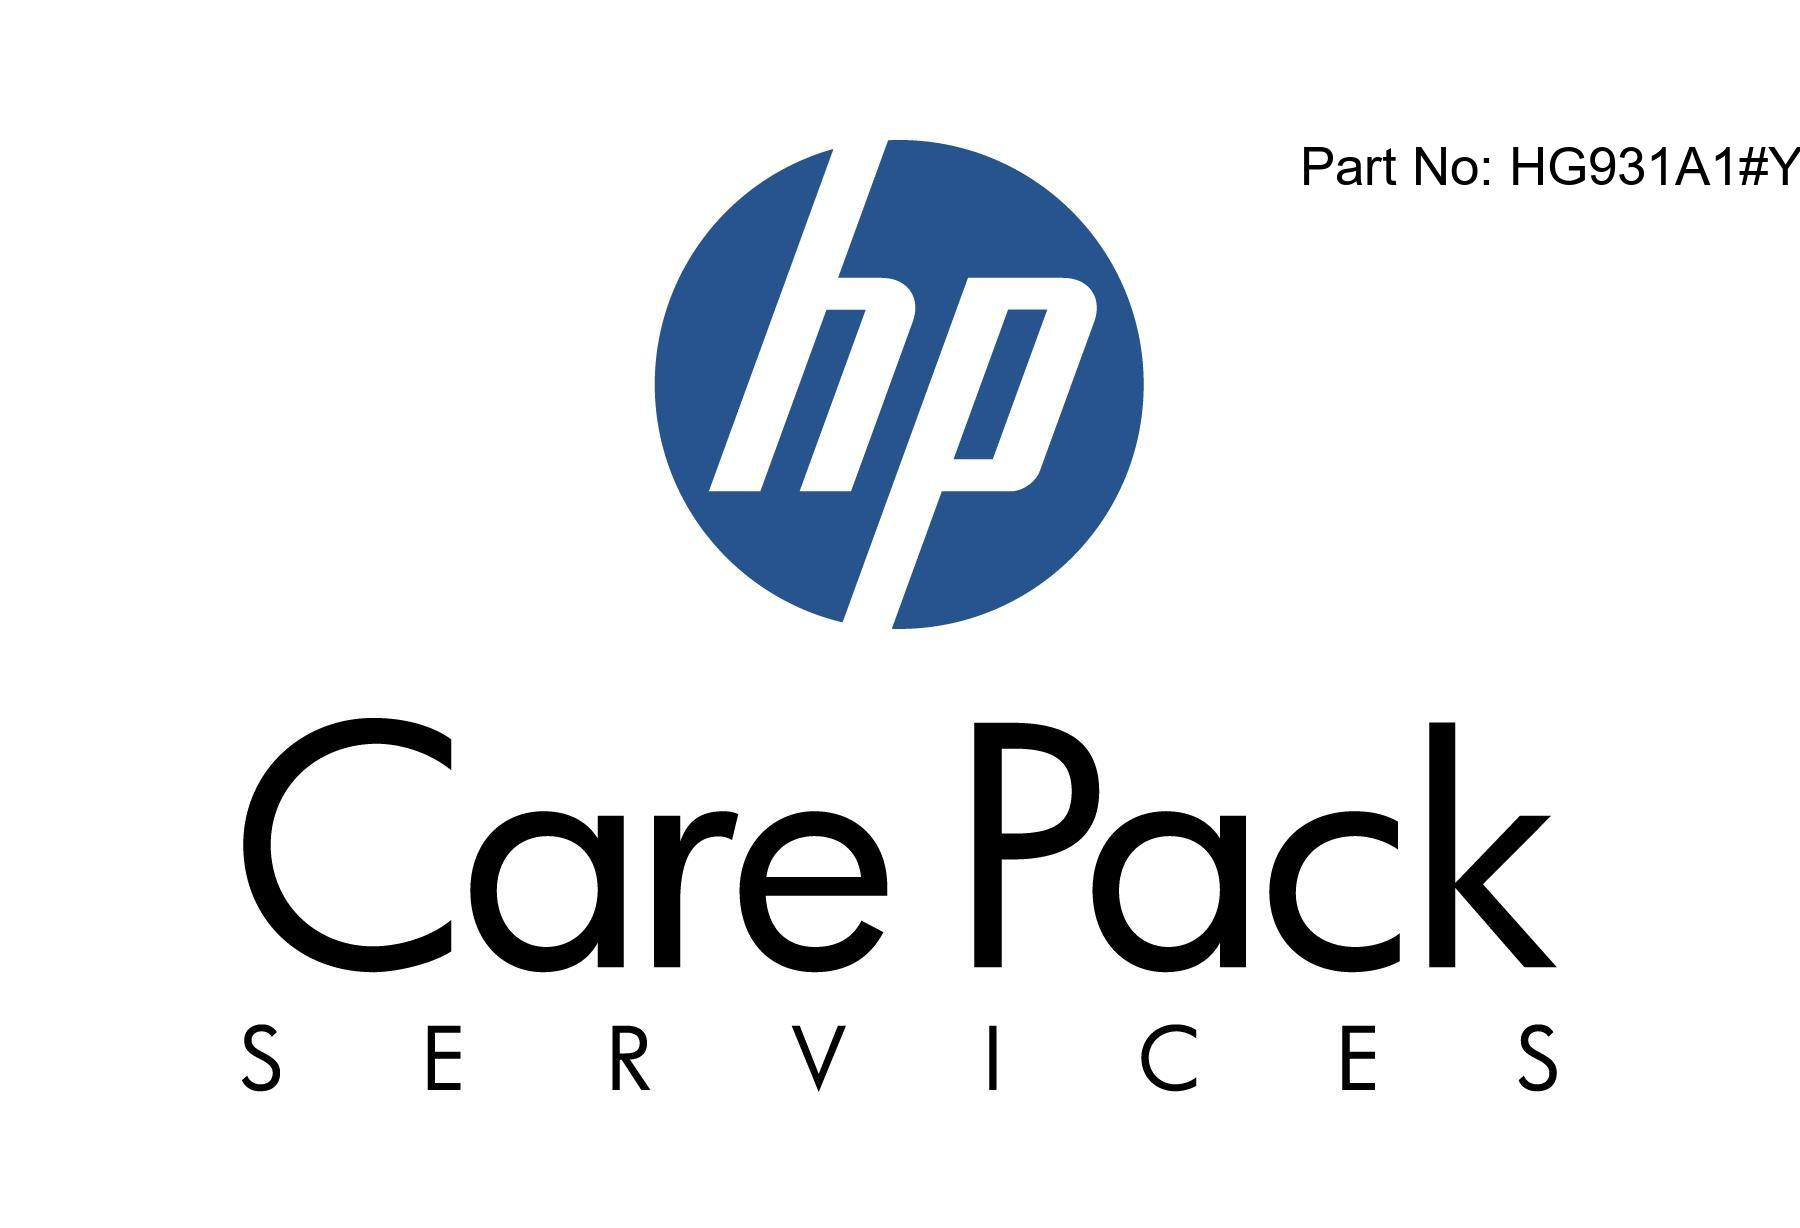 Proactive 24 with Defective Media Retention - Technical support - for HPE 3PAR 8200 Priority Optimization - 8 drives - phone consulting - 1 year - 24x7 - response time: 2 h